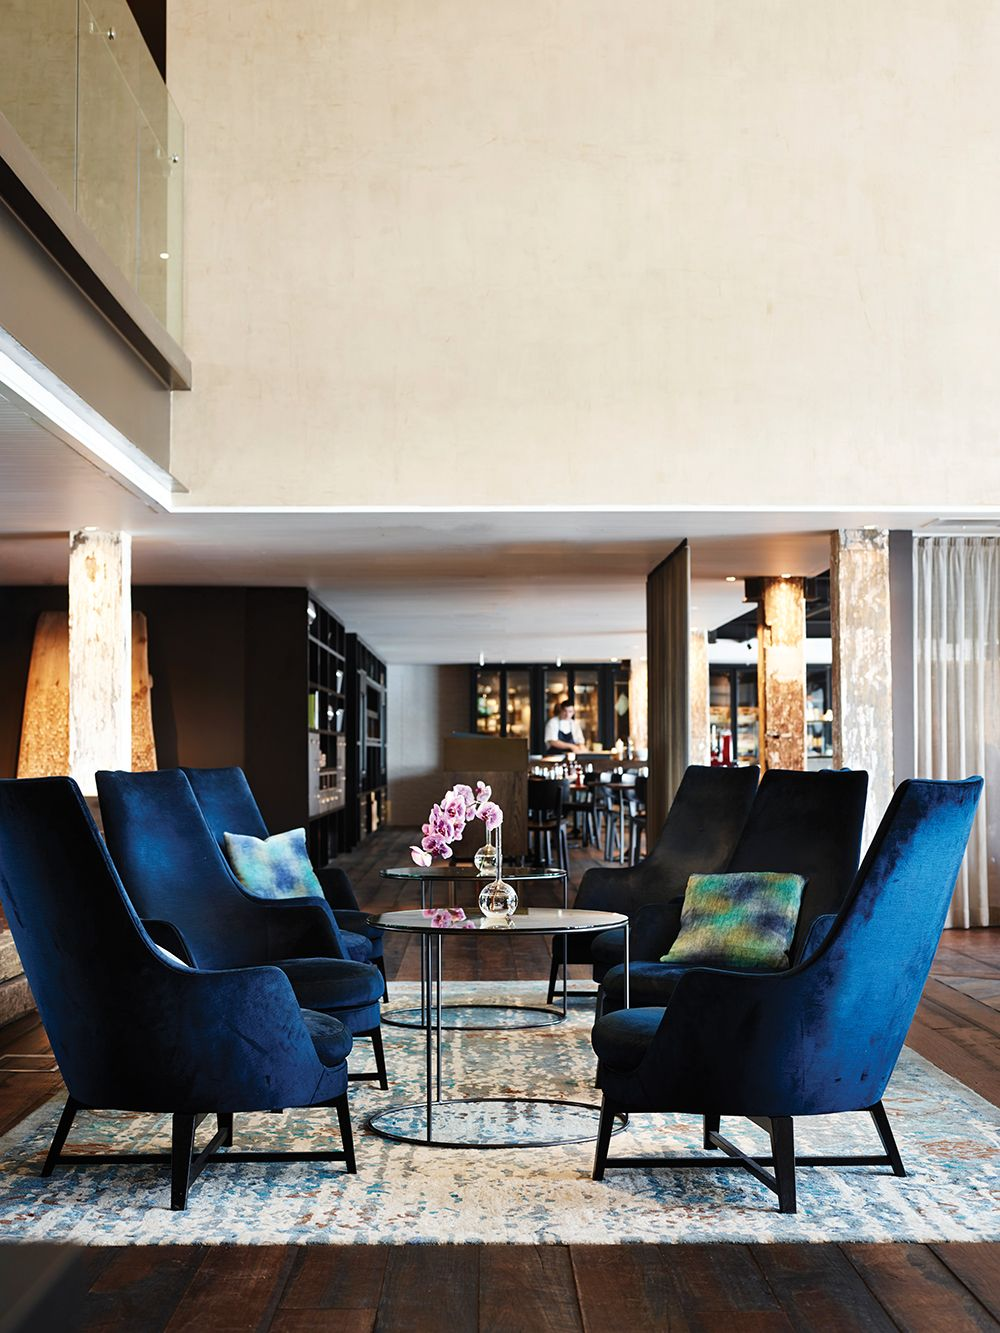 Pier One Hotel Sydney Hospitality Interiors Magazine Ideal Bar